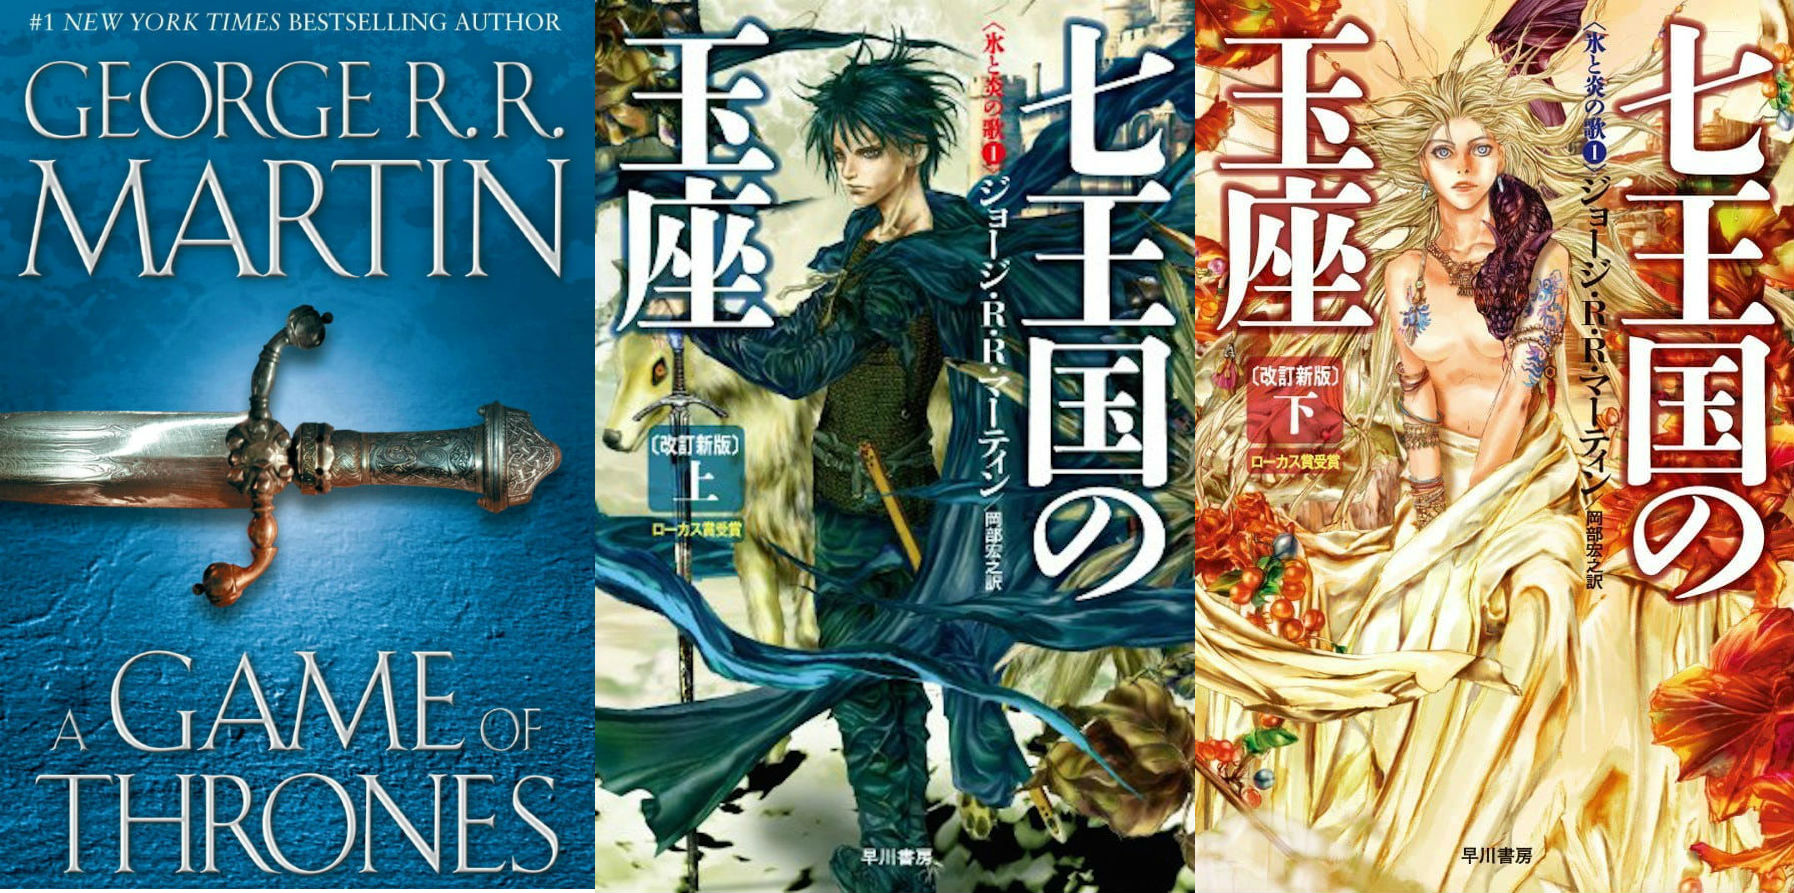 Book Cover Graphism Games : Check out these covers for the japanese translated game of